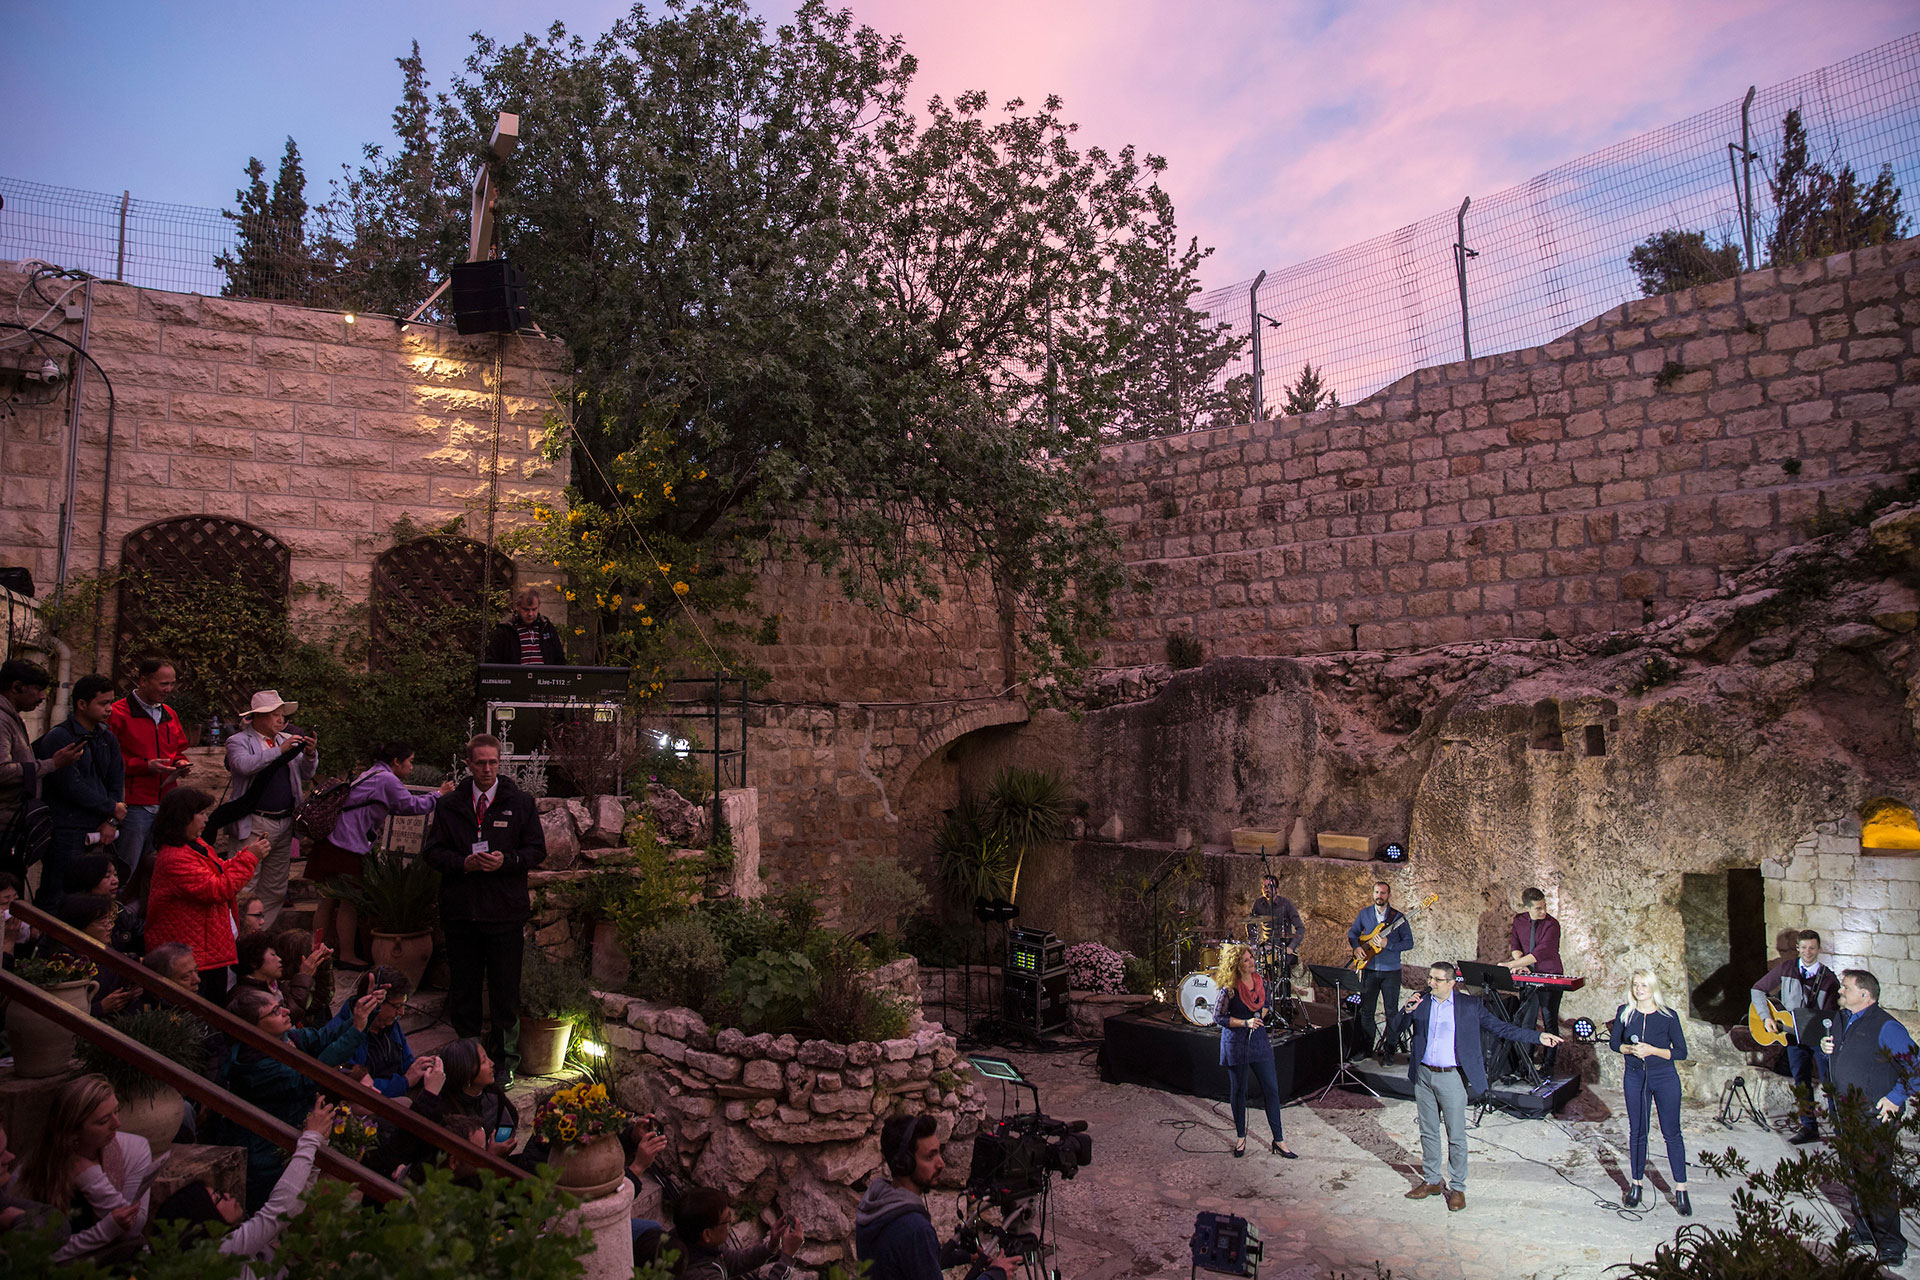 The ceremony at the Garden Tomb  is accompanied by music. (Photo by Heidi Levine for The GroundTruth Project).